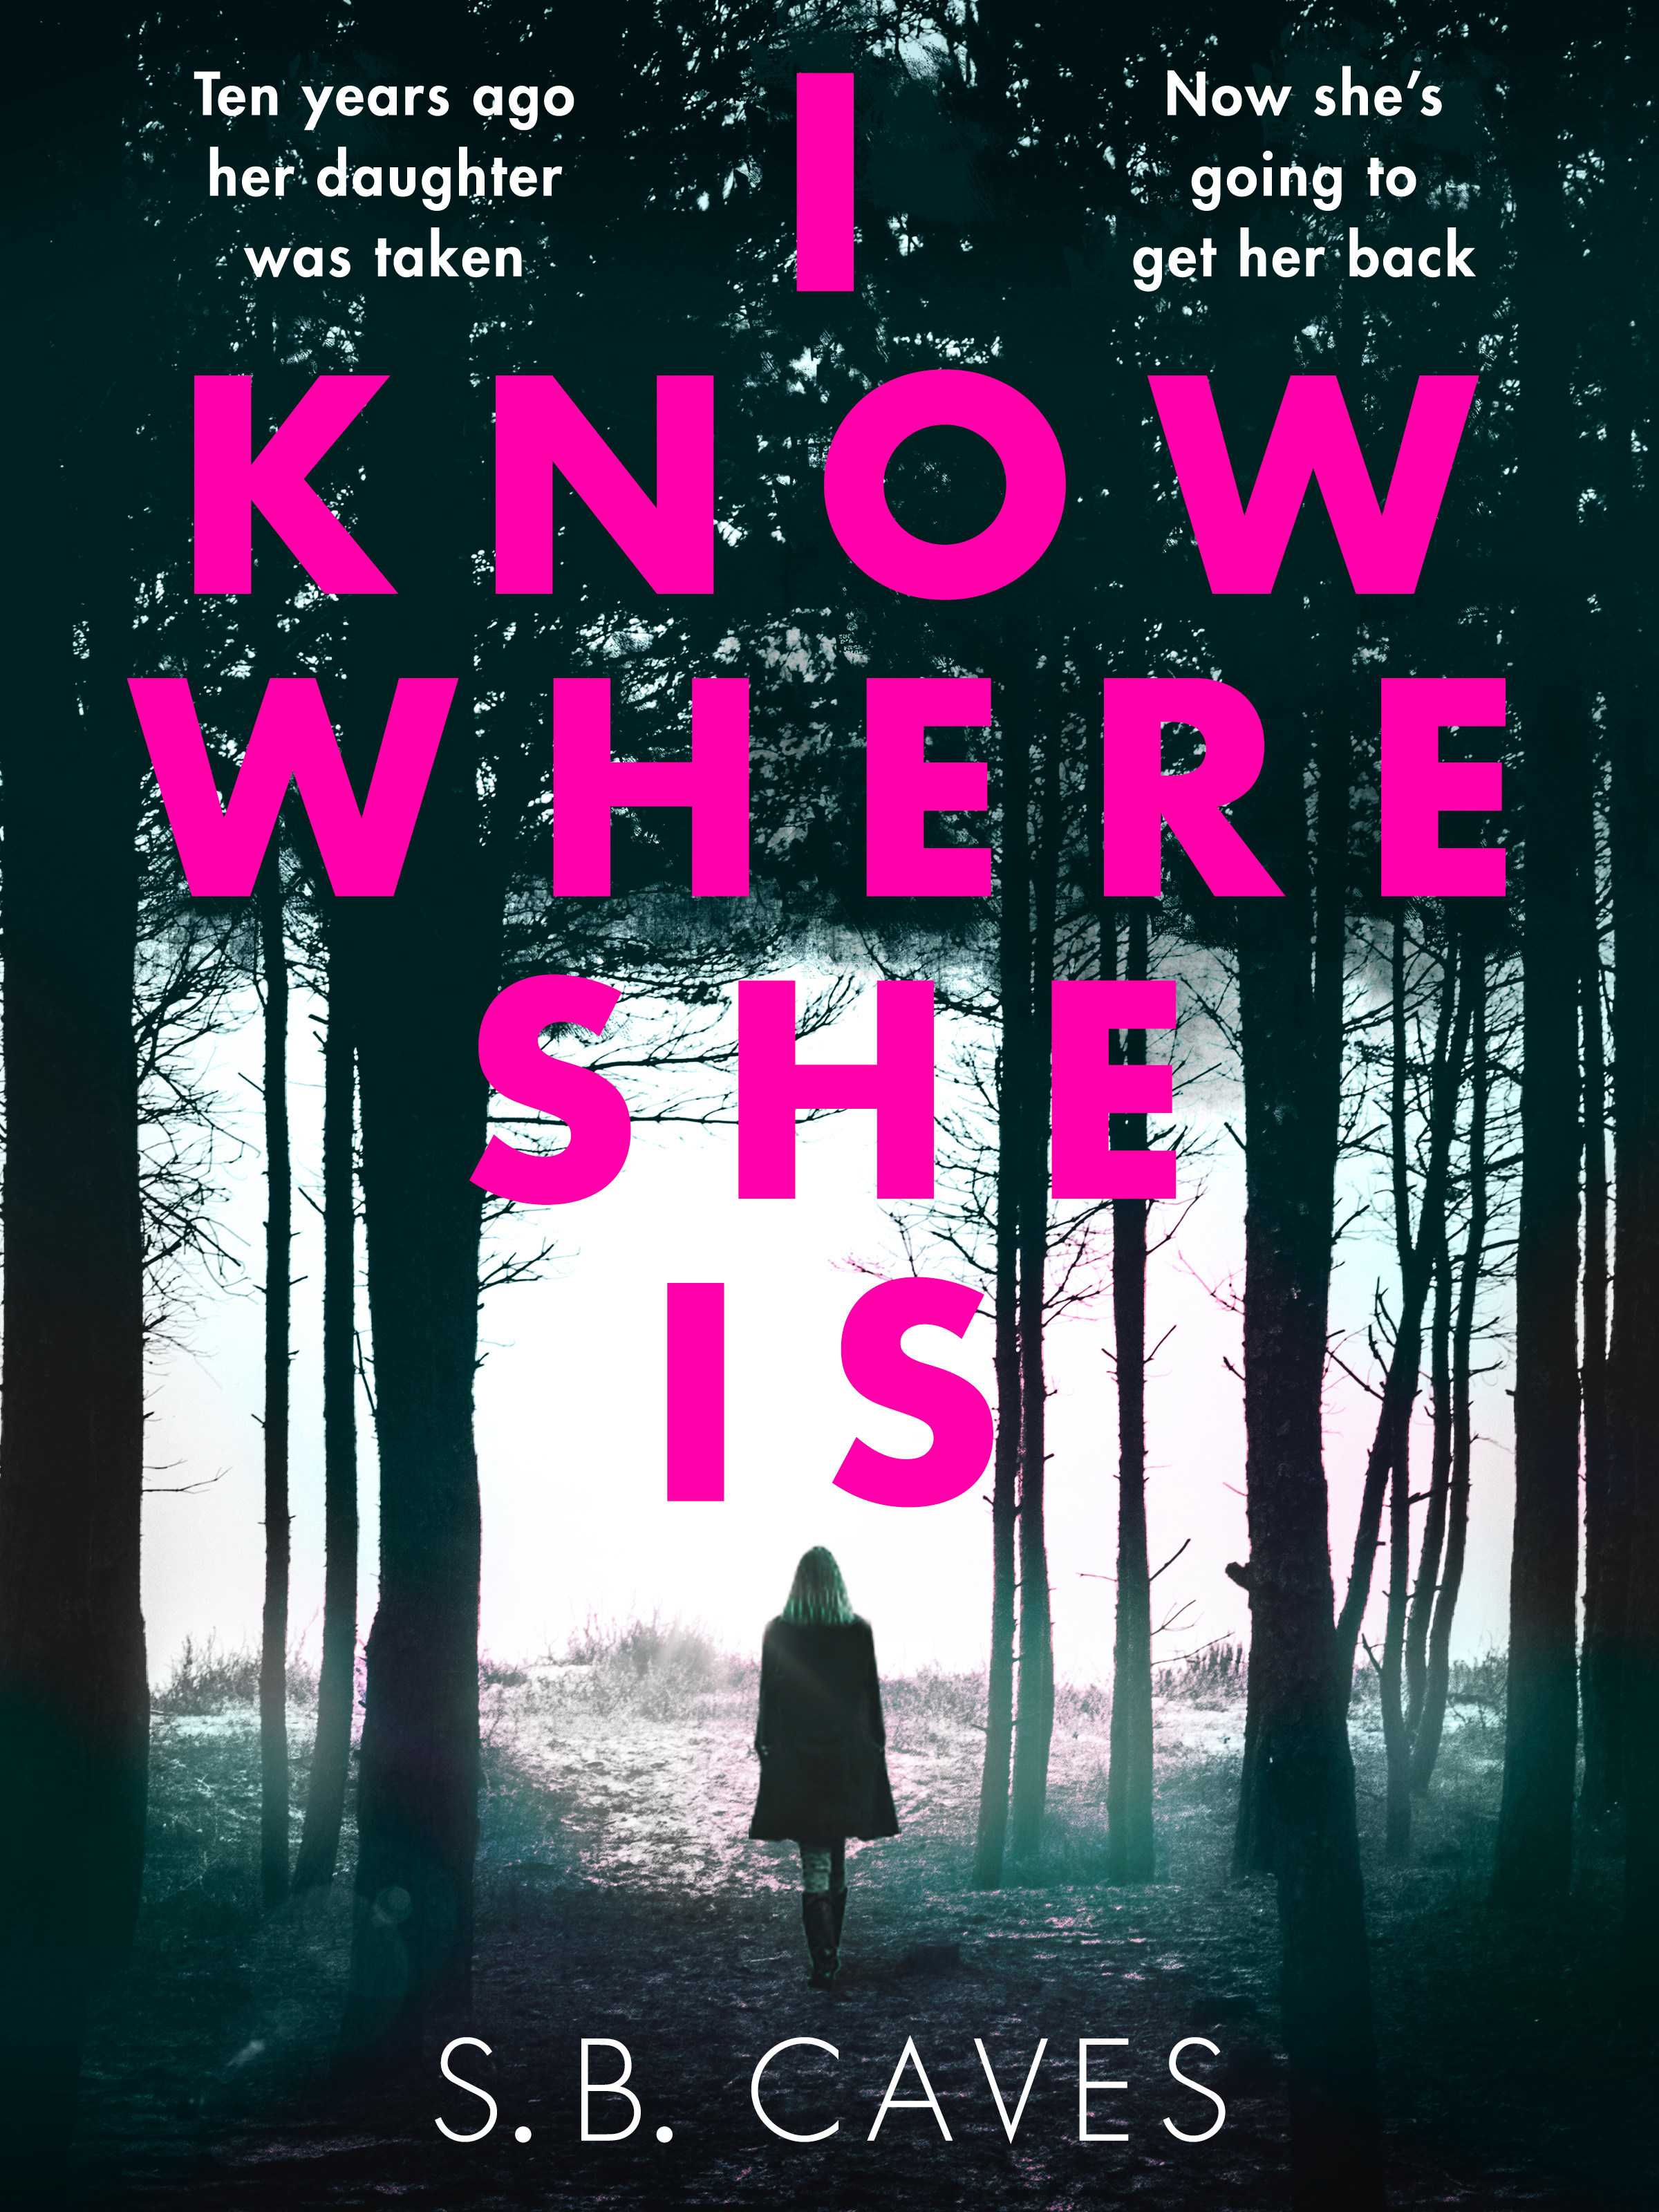 I KNOW WHERE SHE IS  Thriller, 257 pages Canelo, August 2017  On the tenth anniversary of her daughter  Autumn' s abduction, Francine  receives an anonymous note containing just five words: I KNOW WHERE SHE IS   When a young woman approaches her the next day claiming to have sent the letter Francine wants to dismiss it as a cruel, twisted joke.  But the stranger knows things that only Autumn would know.  It soon becomes clear that Francine must go to dark places in order to learn the truth about her child's kidnapping.  She will discover that danger comes from unexpected sources. She will do things she never imagined herself capable of.   But will Francine get her daughter back – or is it too late?